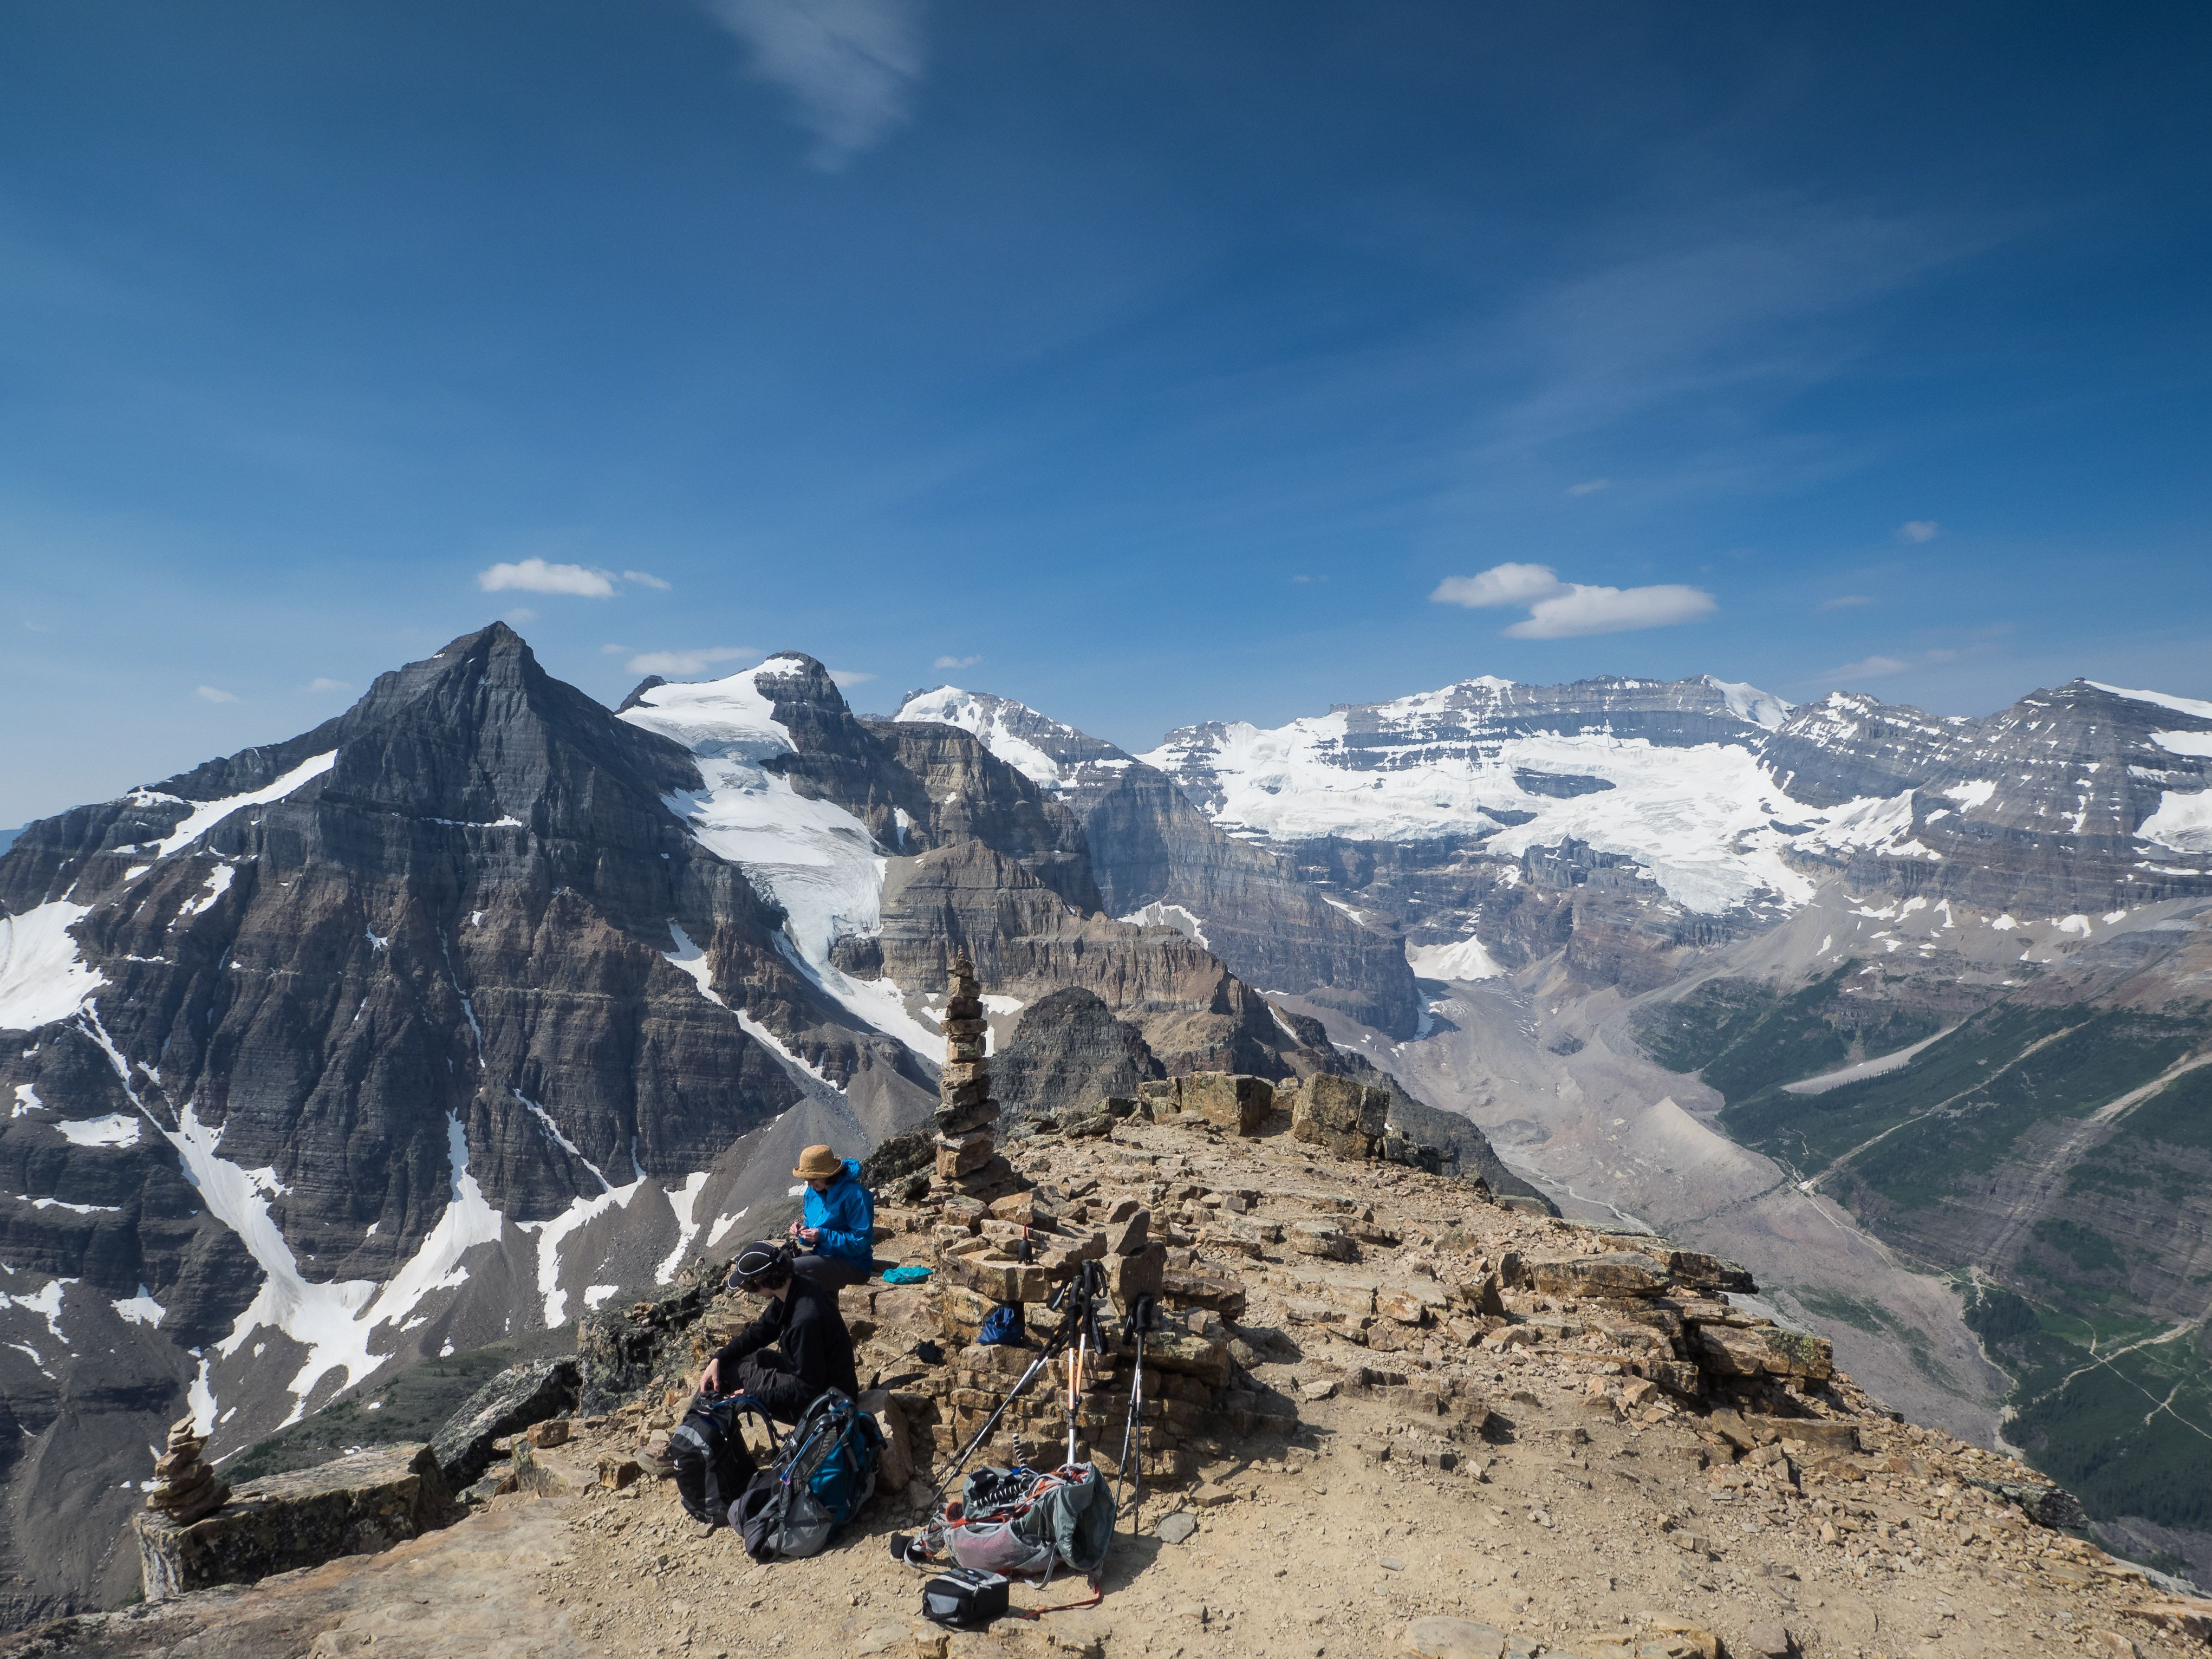 Hiking Saddleback Pass / Fairview Mountain from Lake Louise. (10,2 km, 5-6 hours)